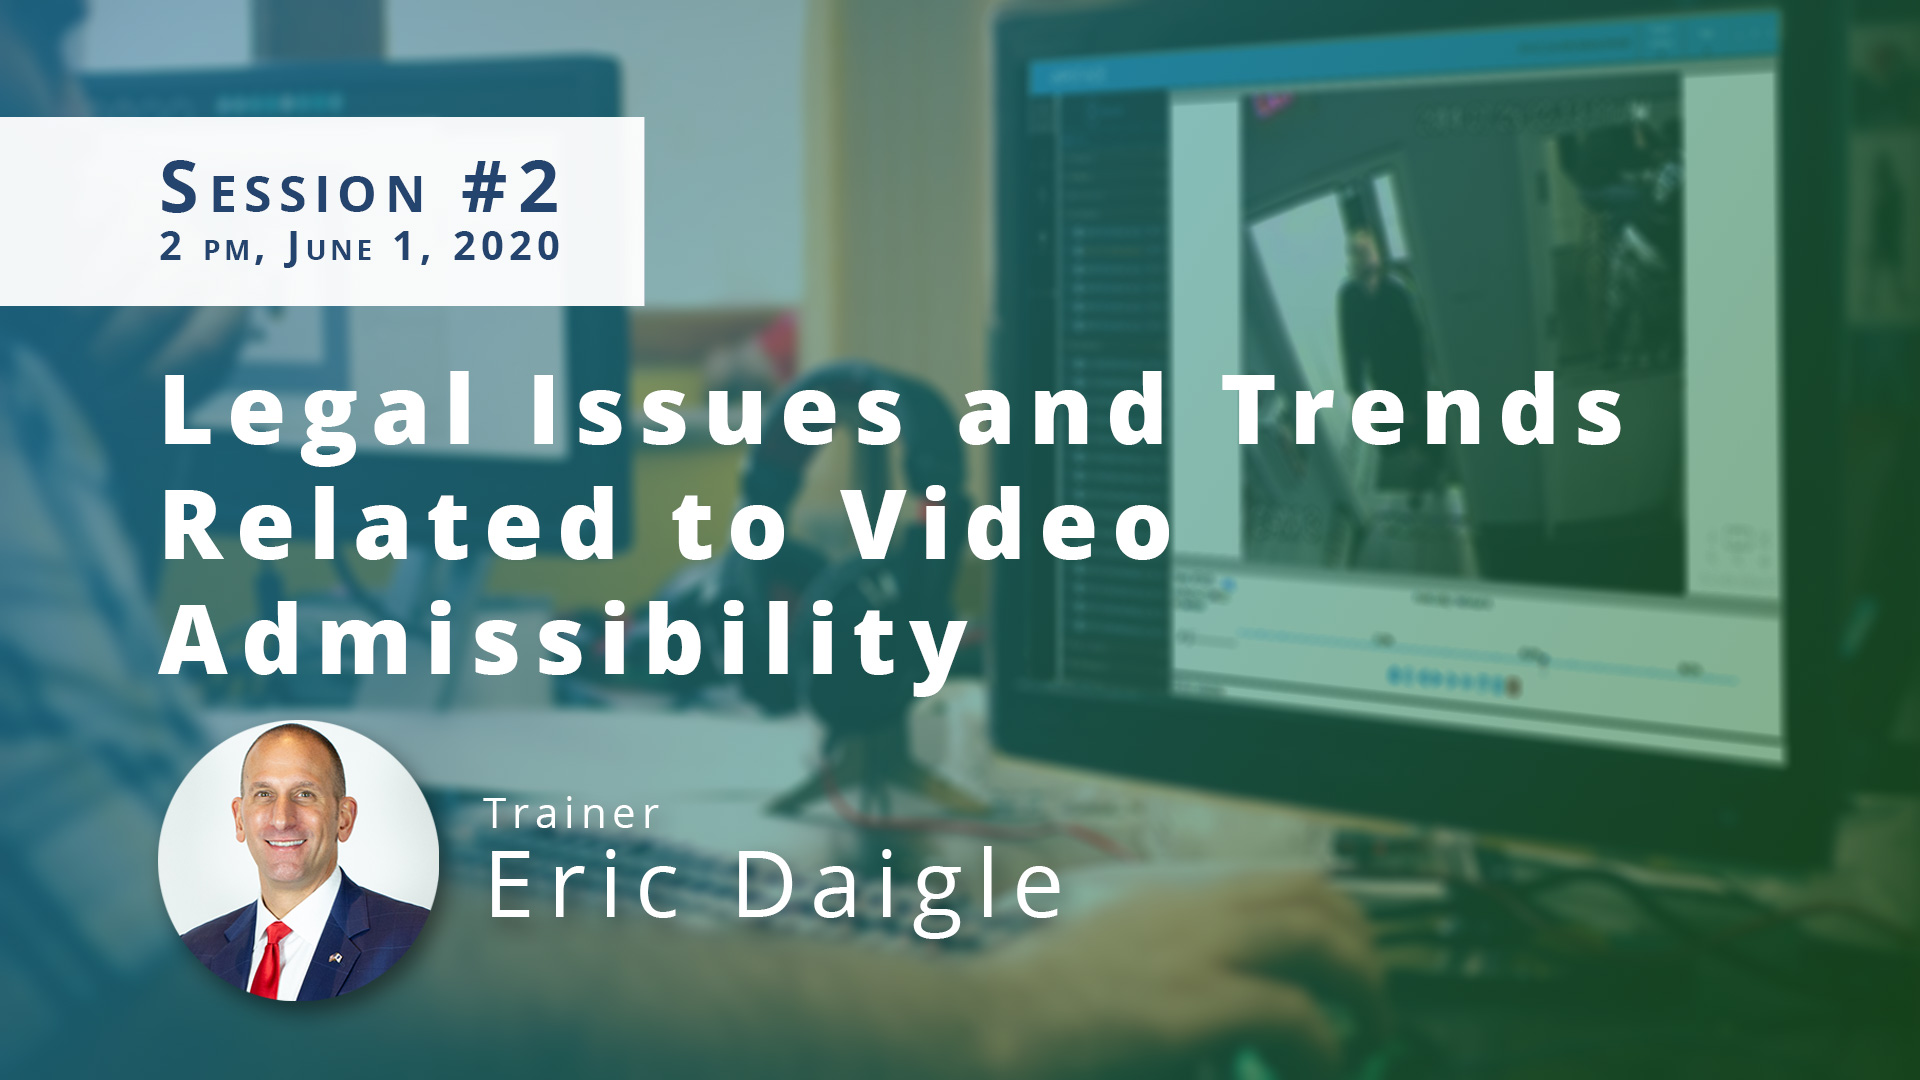 Legal Issues and Trends Related to Video Admissibility